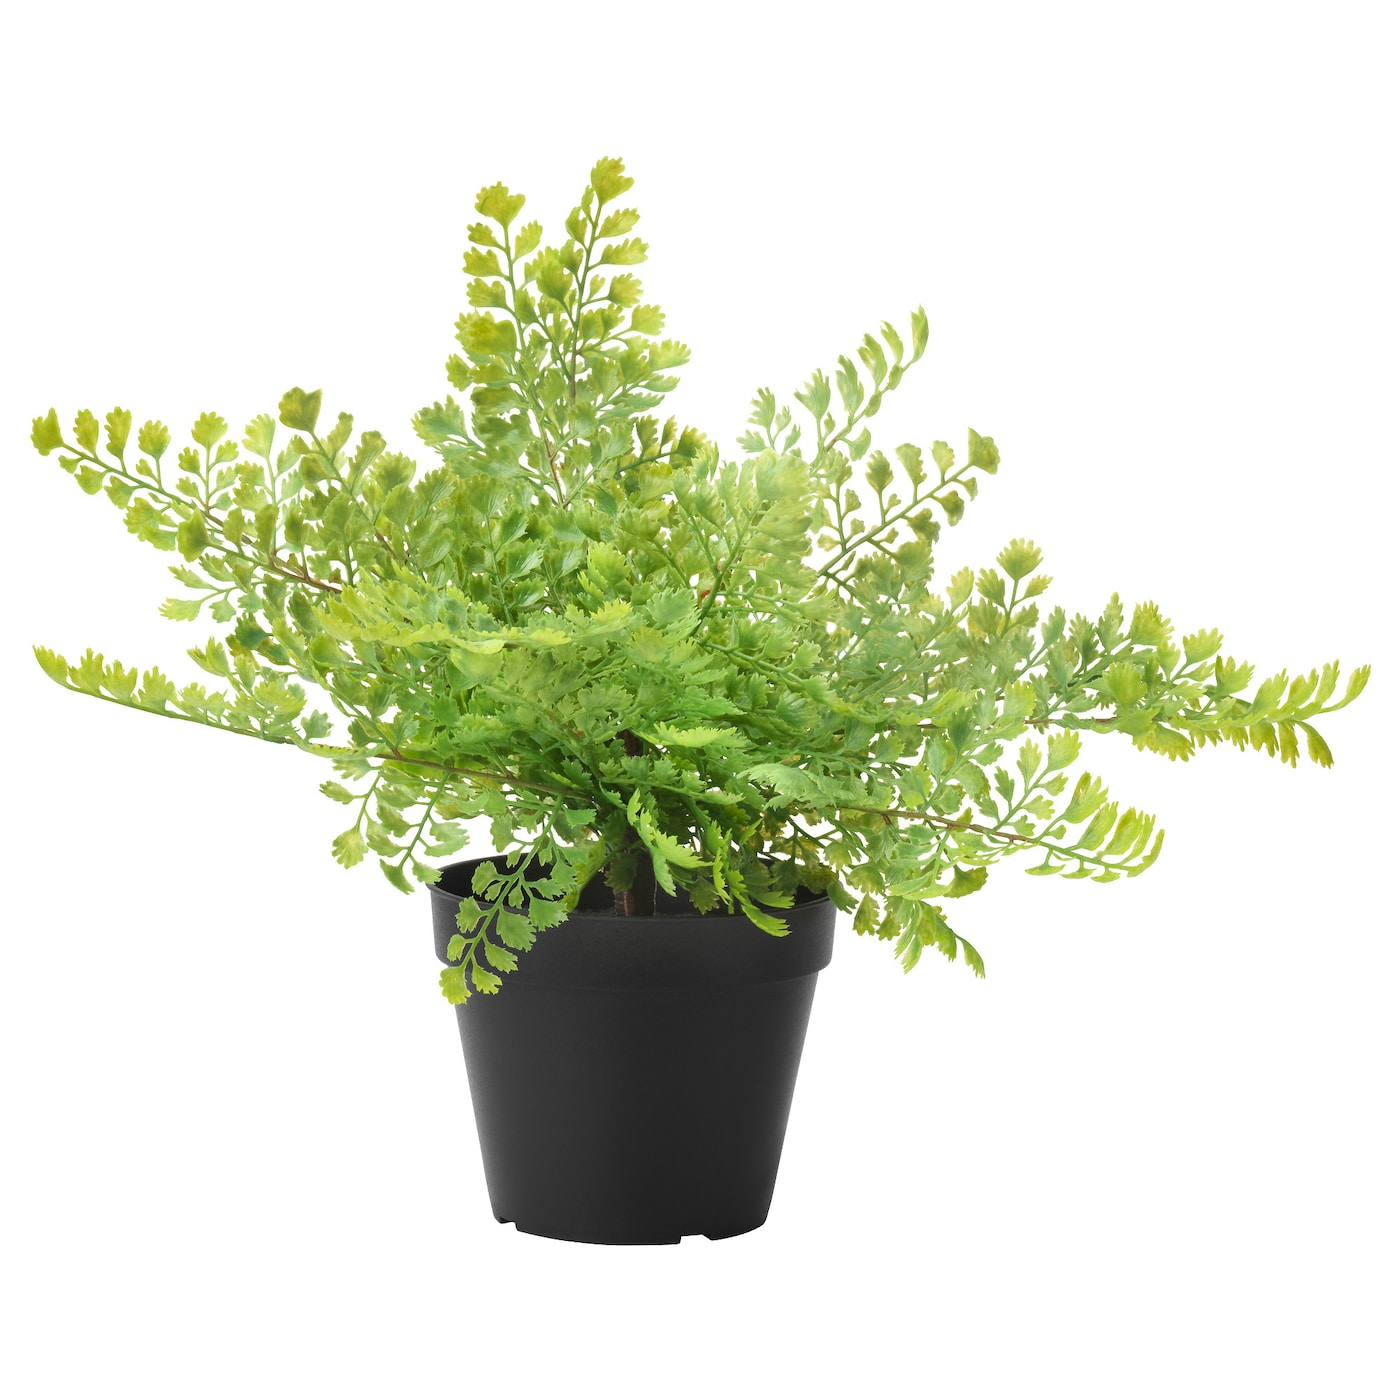 FEJKA Artificial potted plant In/outdoor/maidenhair fern ...